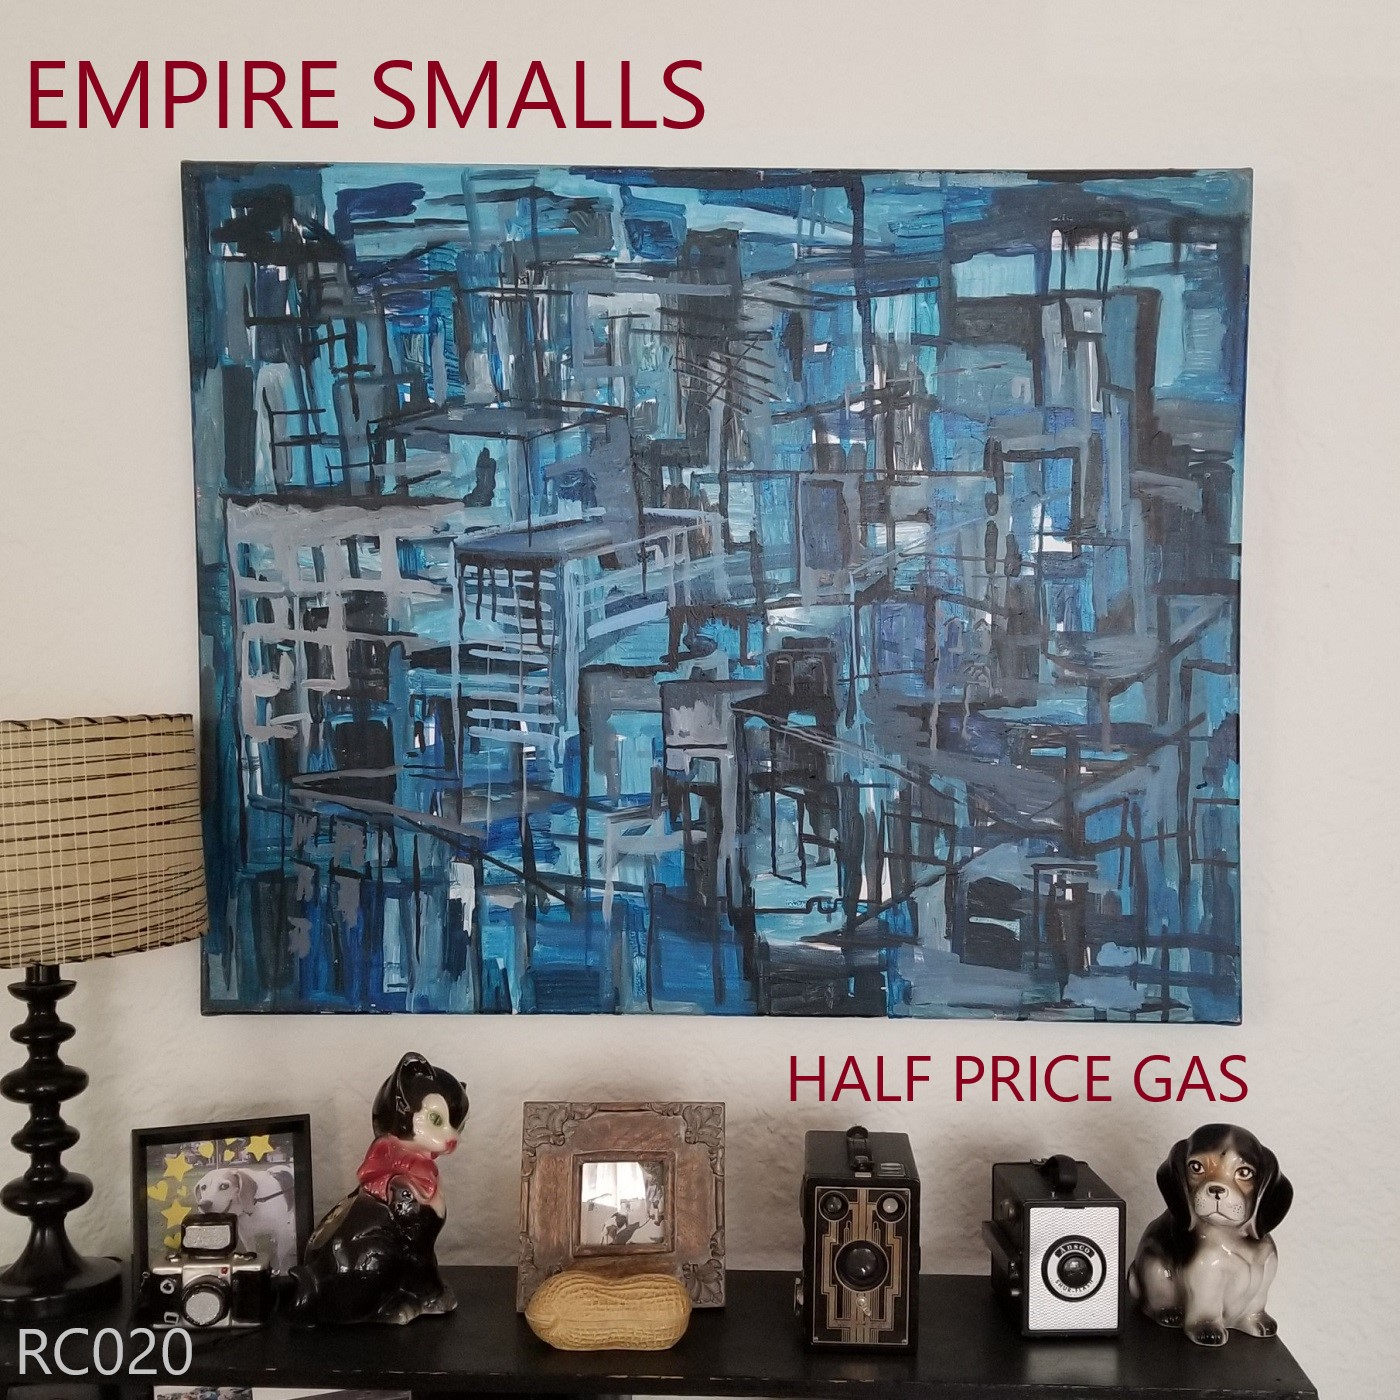 Empire Smalls Half Price Gas single